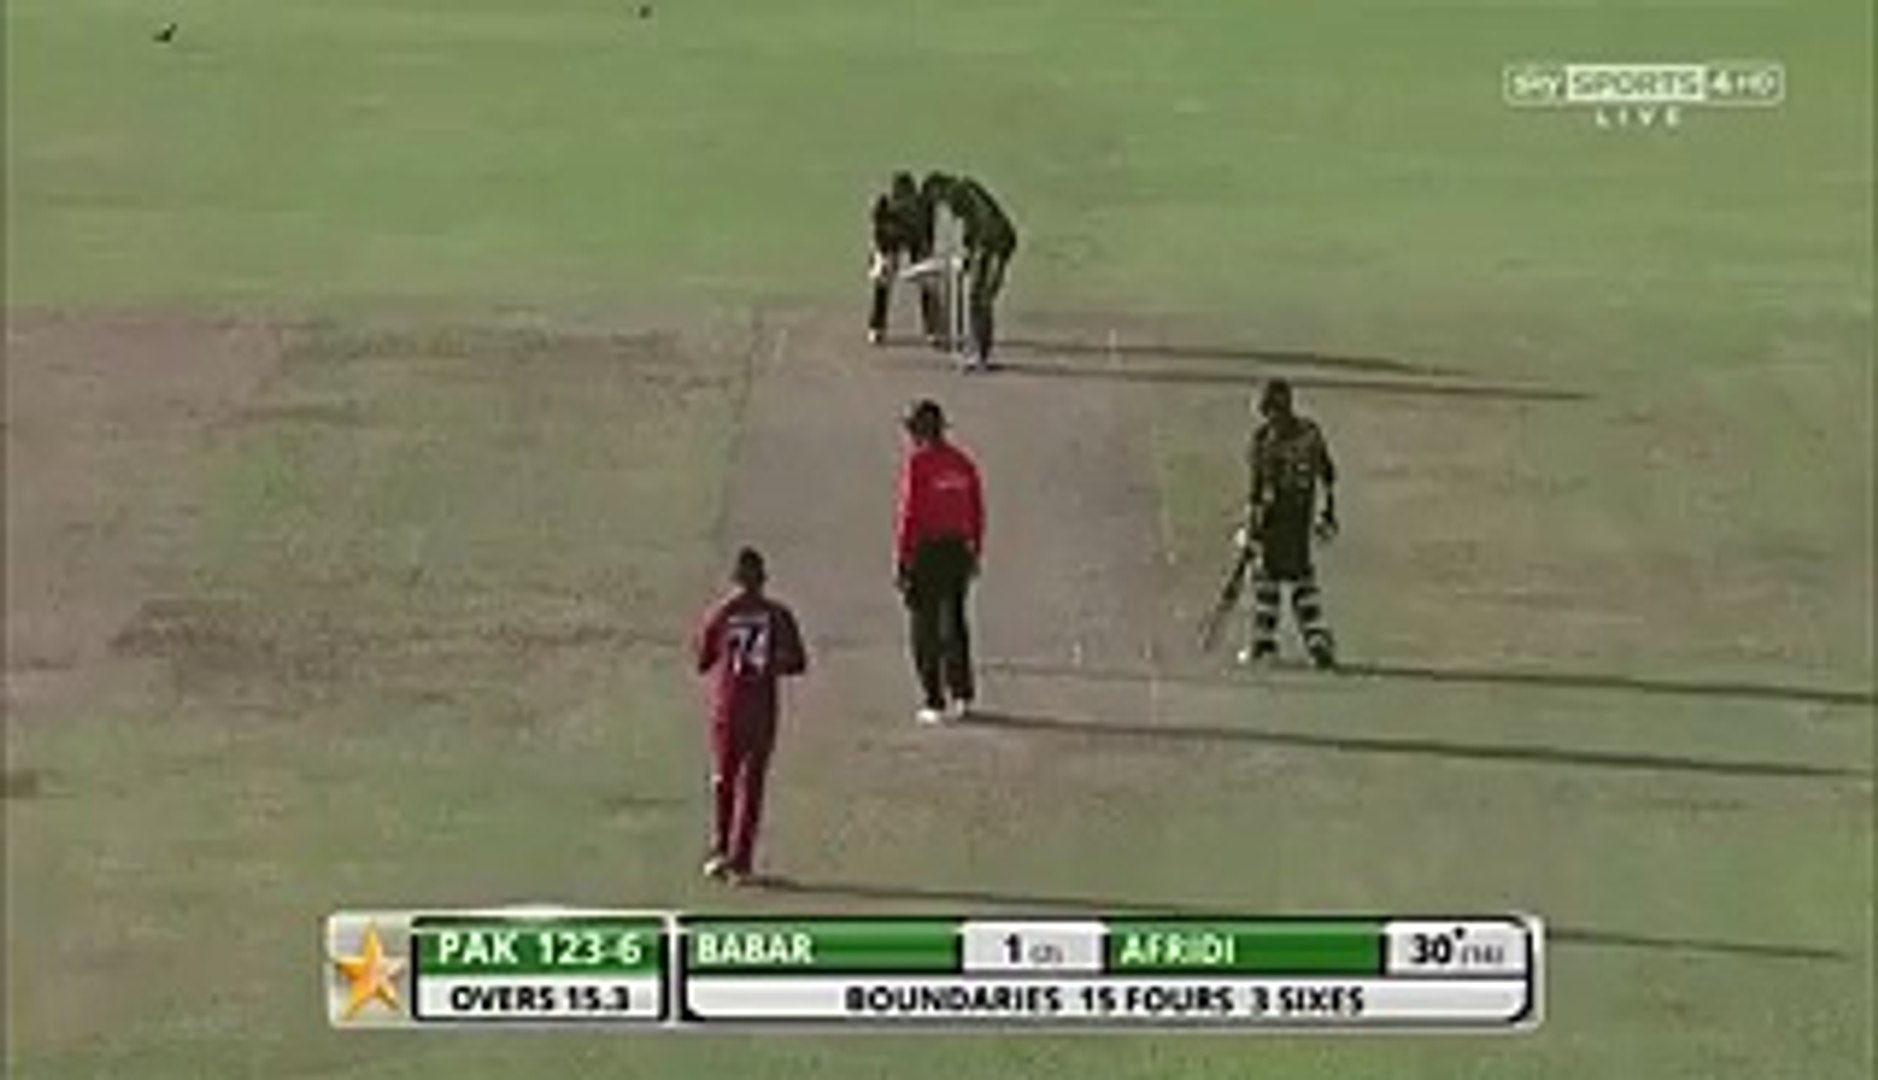 Shahid Afridi saying (O Teri Khair) on Sunil Narine Delivery